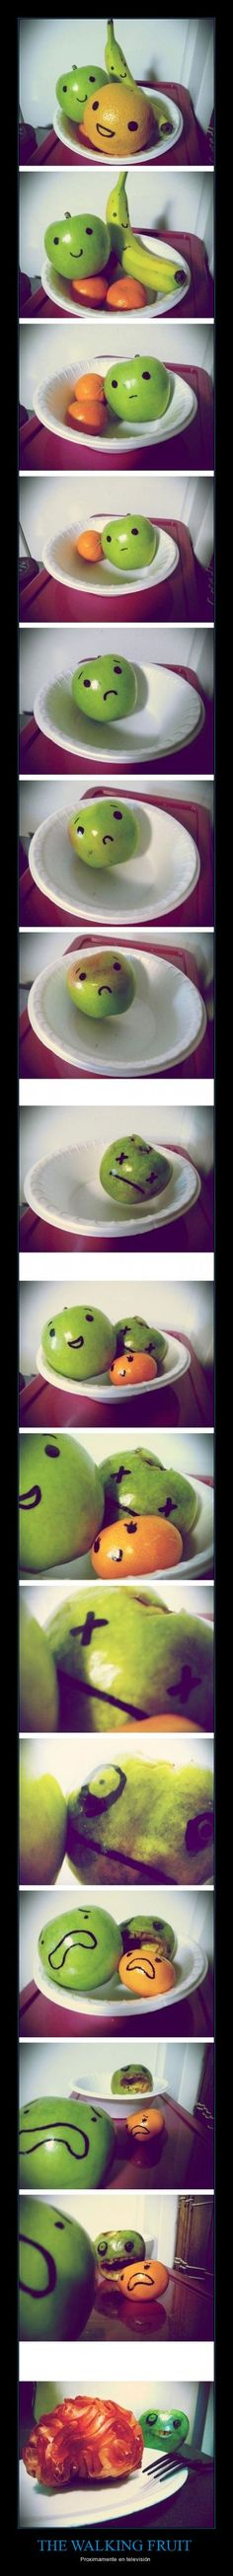 the walking fruit